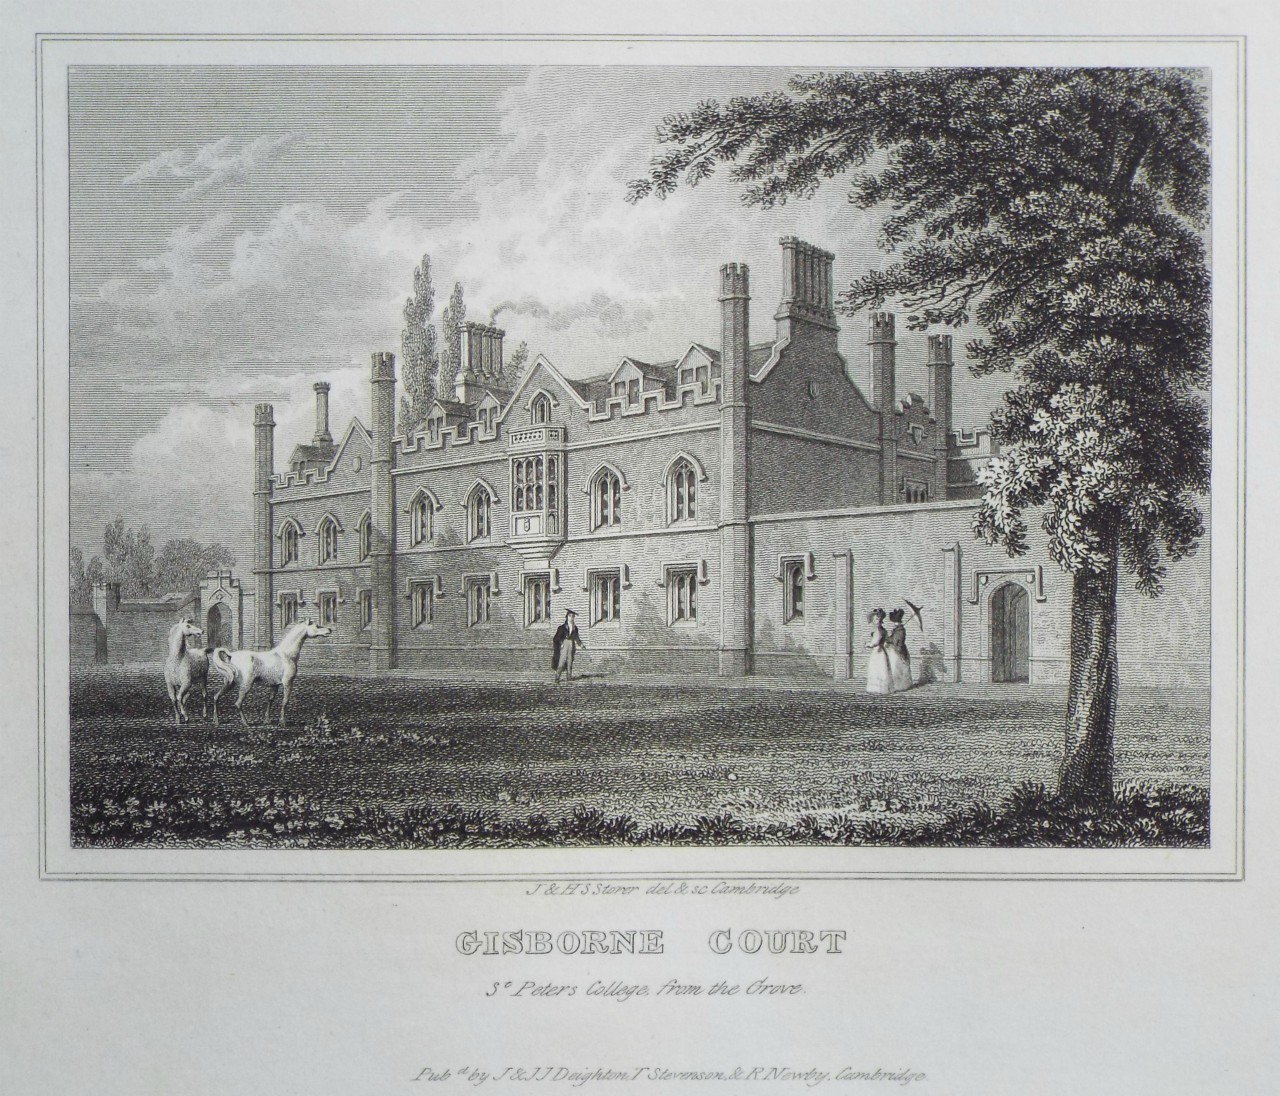 Print - Gisborne Court St. Peter's College from the Grpve. - Storer